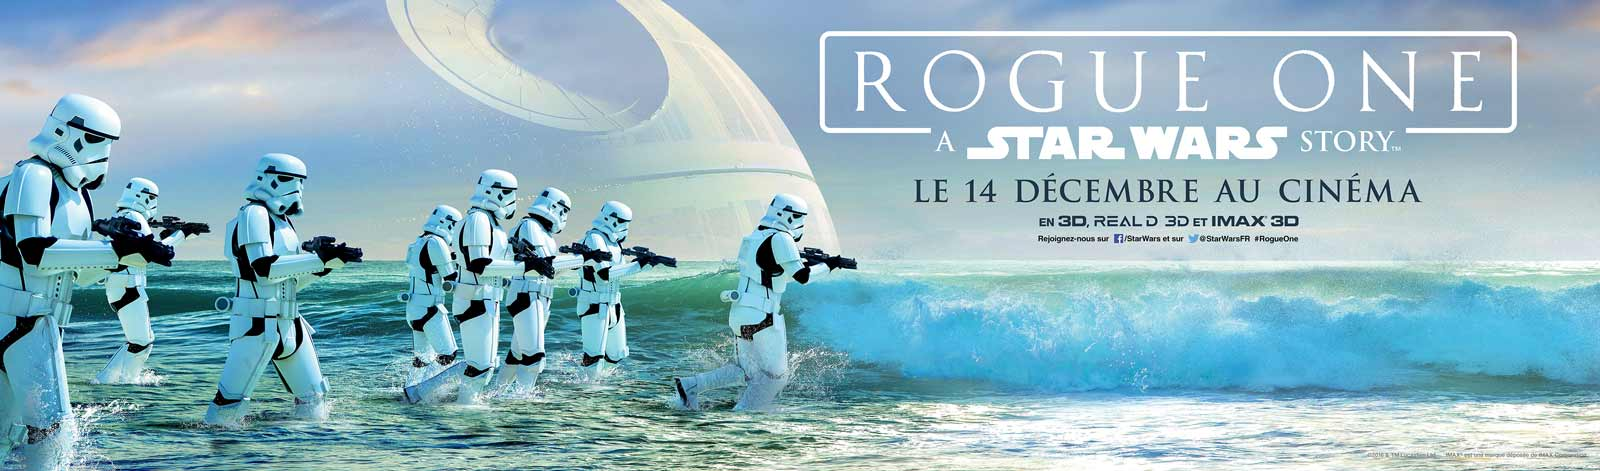 rogue-one023